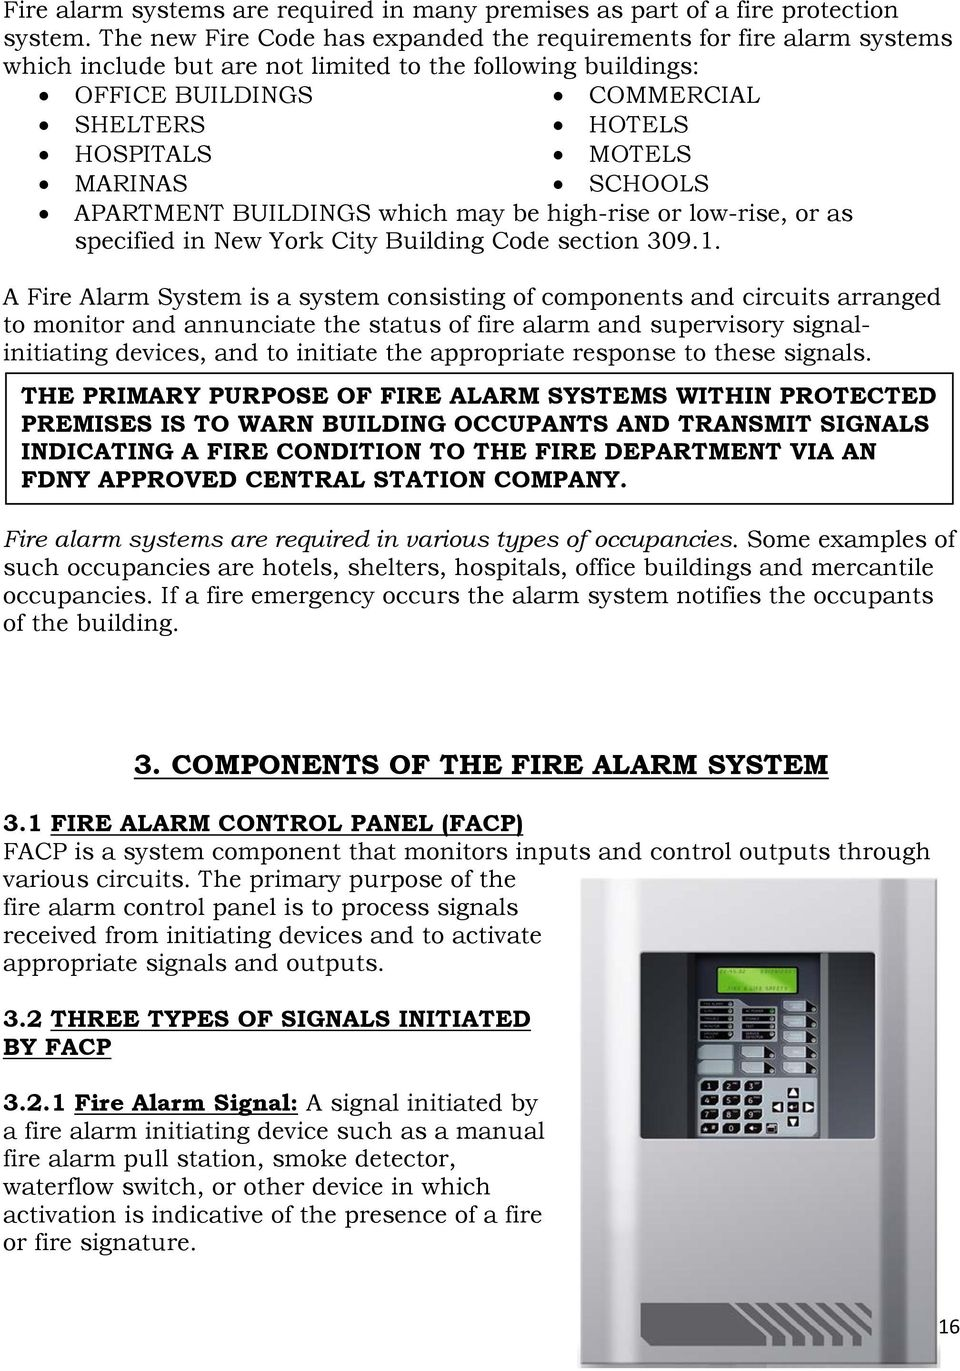 fire department city of new york study material for the certificate rh docplayer net  alberta fire alarm system guide 2006 pdf